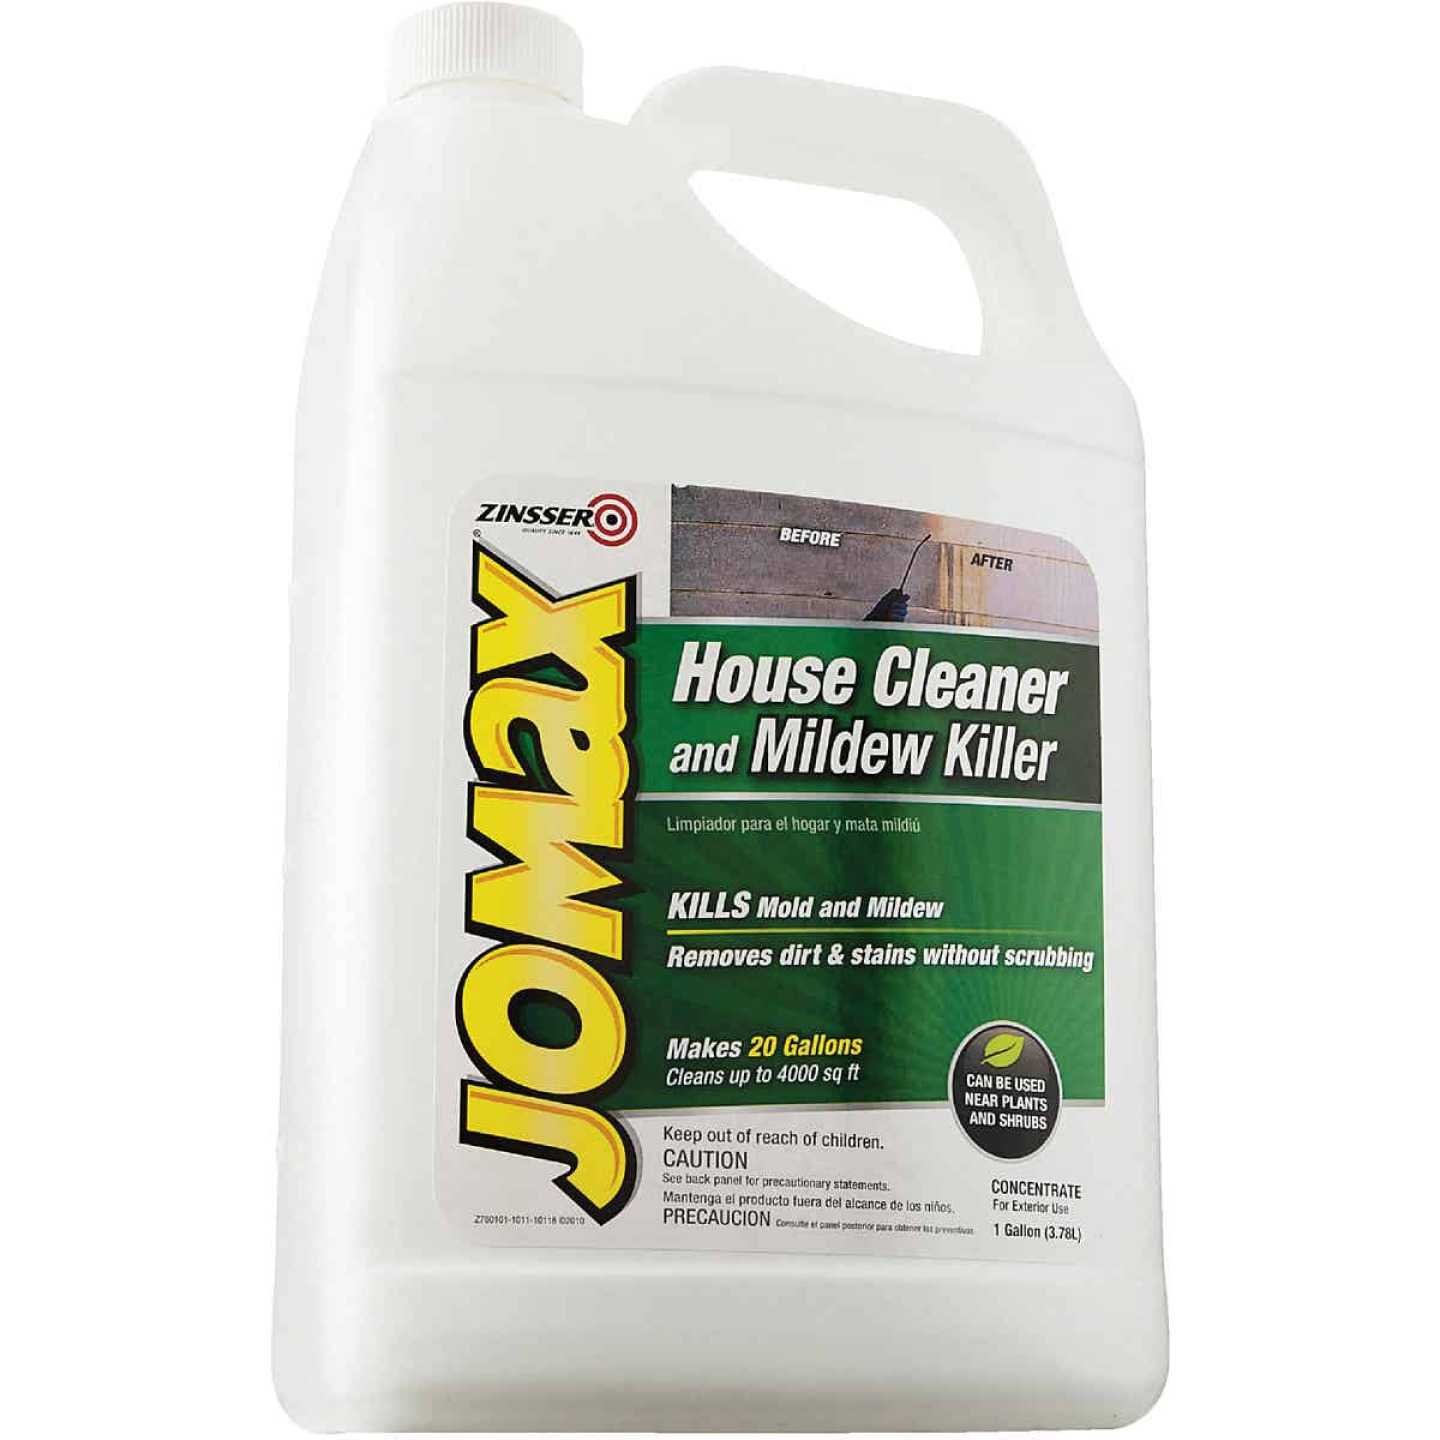 Zinsser Jomax House Cleaner and Mildew Killer, 1 Gal. Image 2